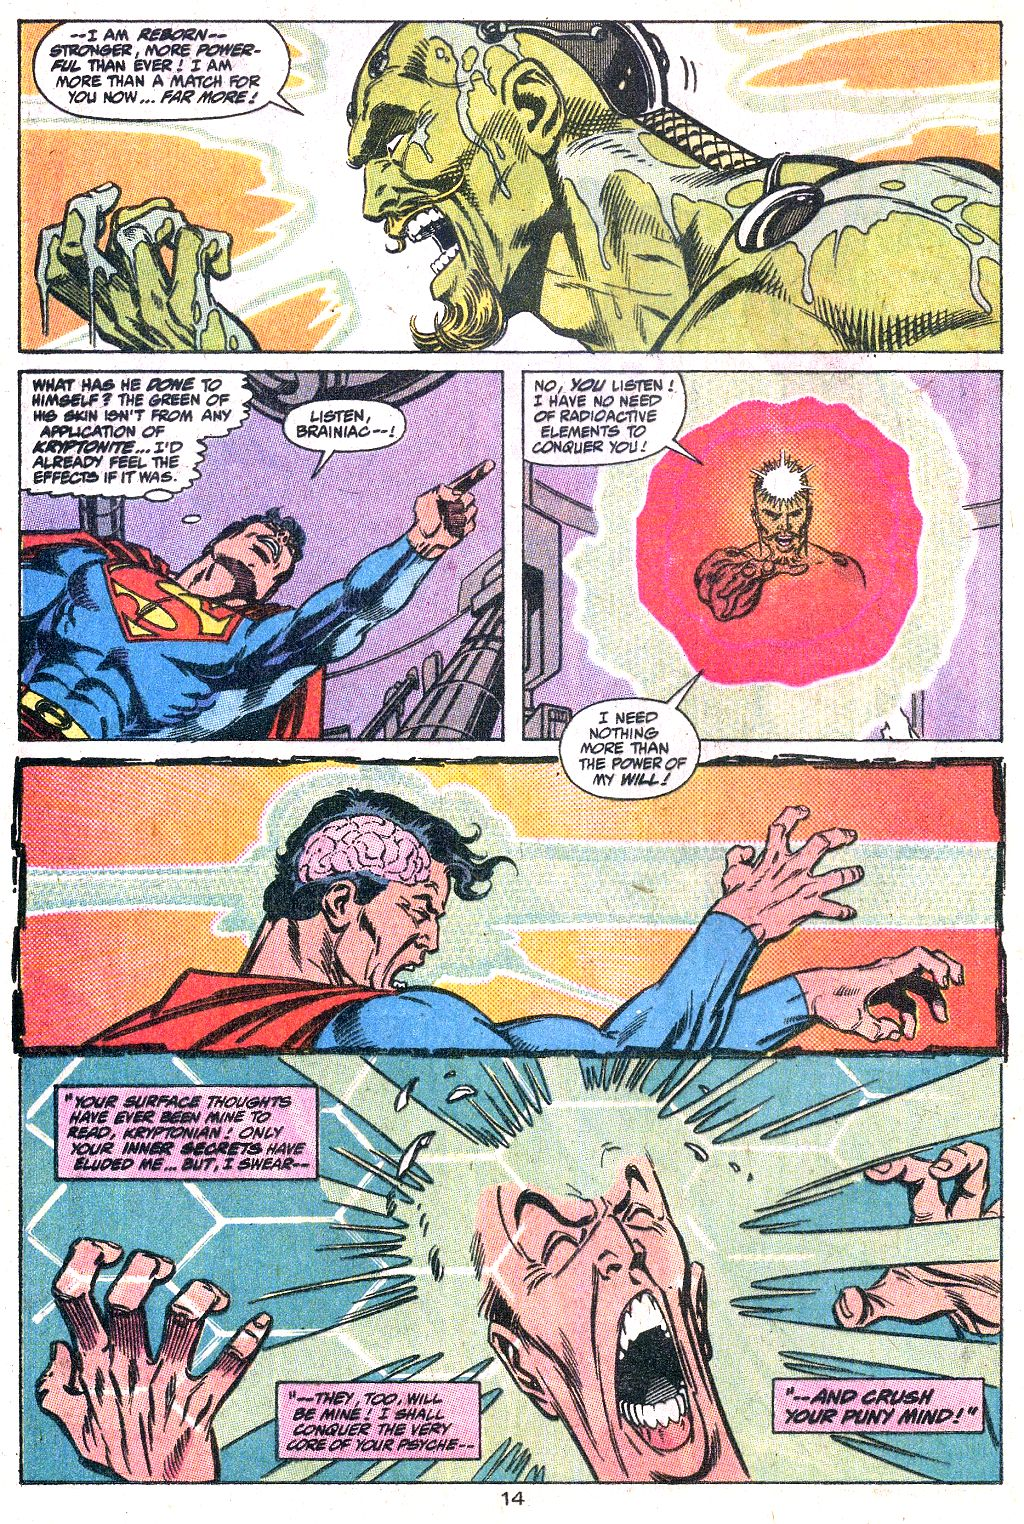 Read online Action Comics (1938) comic -  Issue #649 - 15